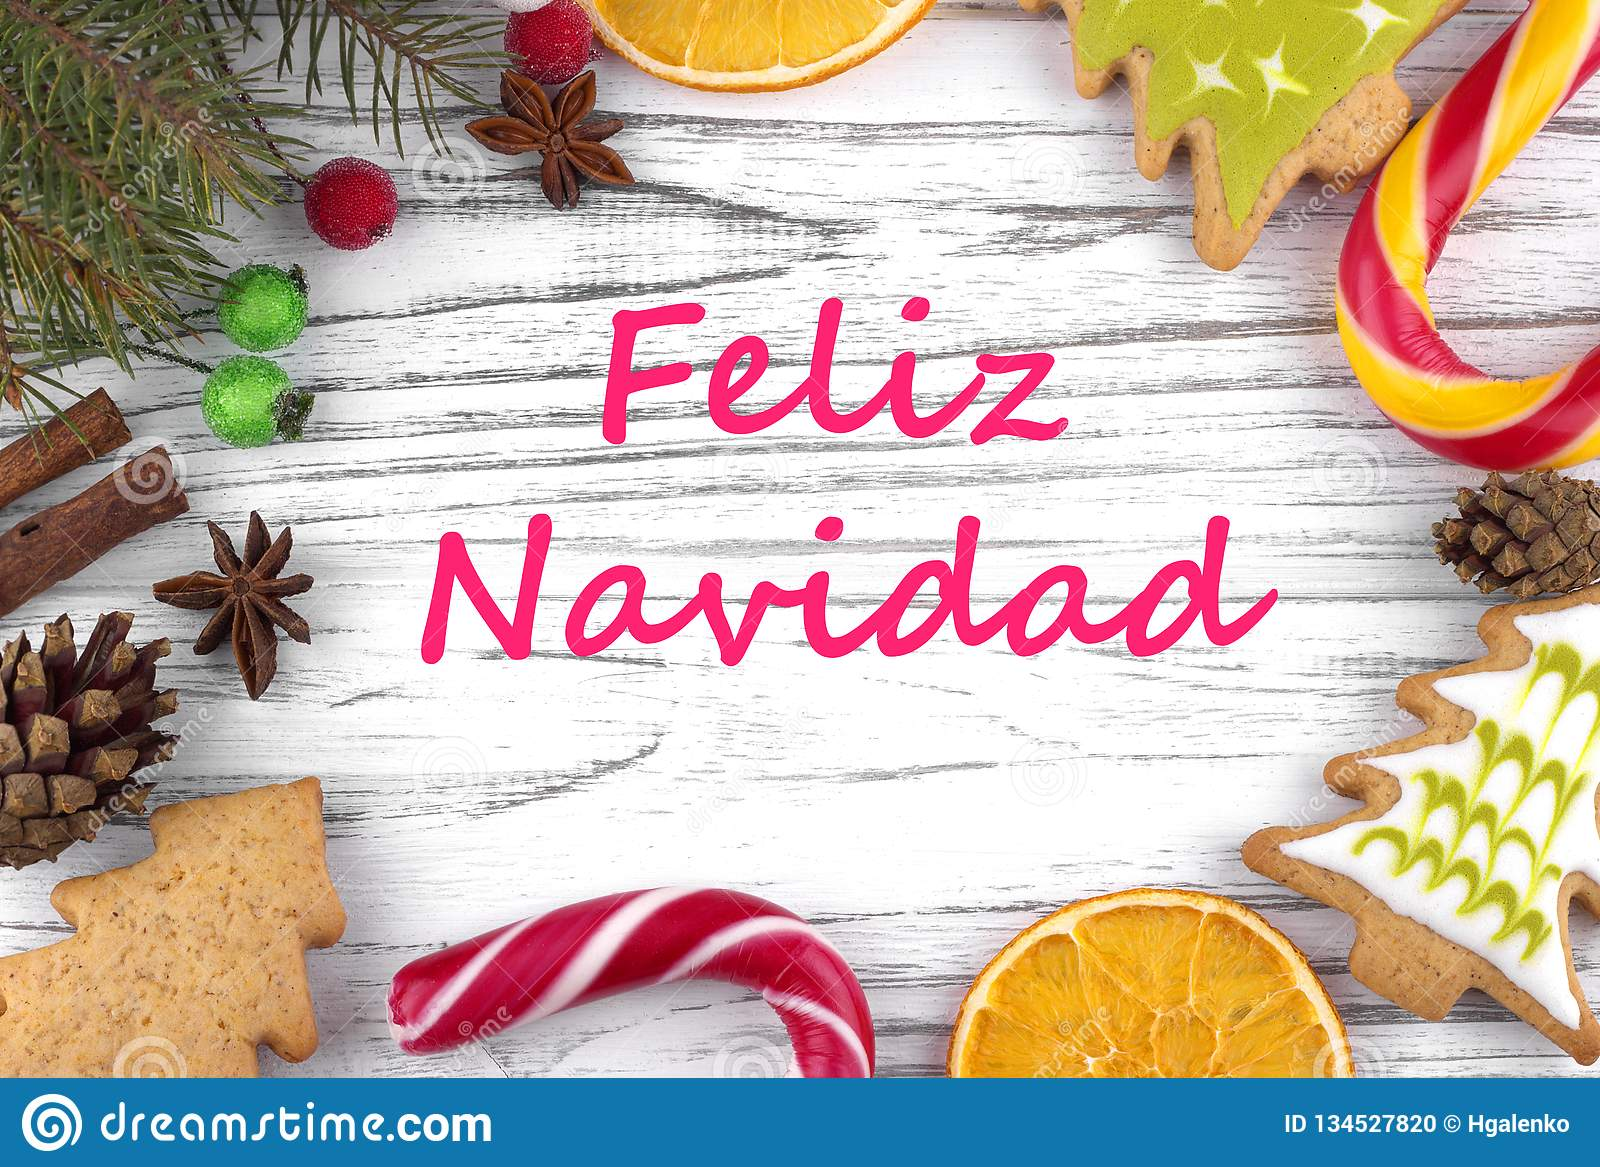 Greeting Card With Text Merry Christmas In Spanish Stock ...